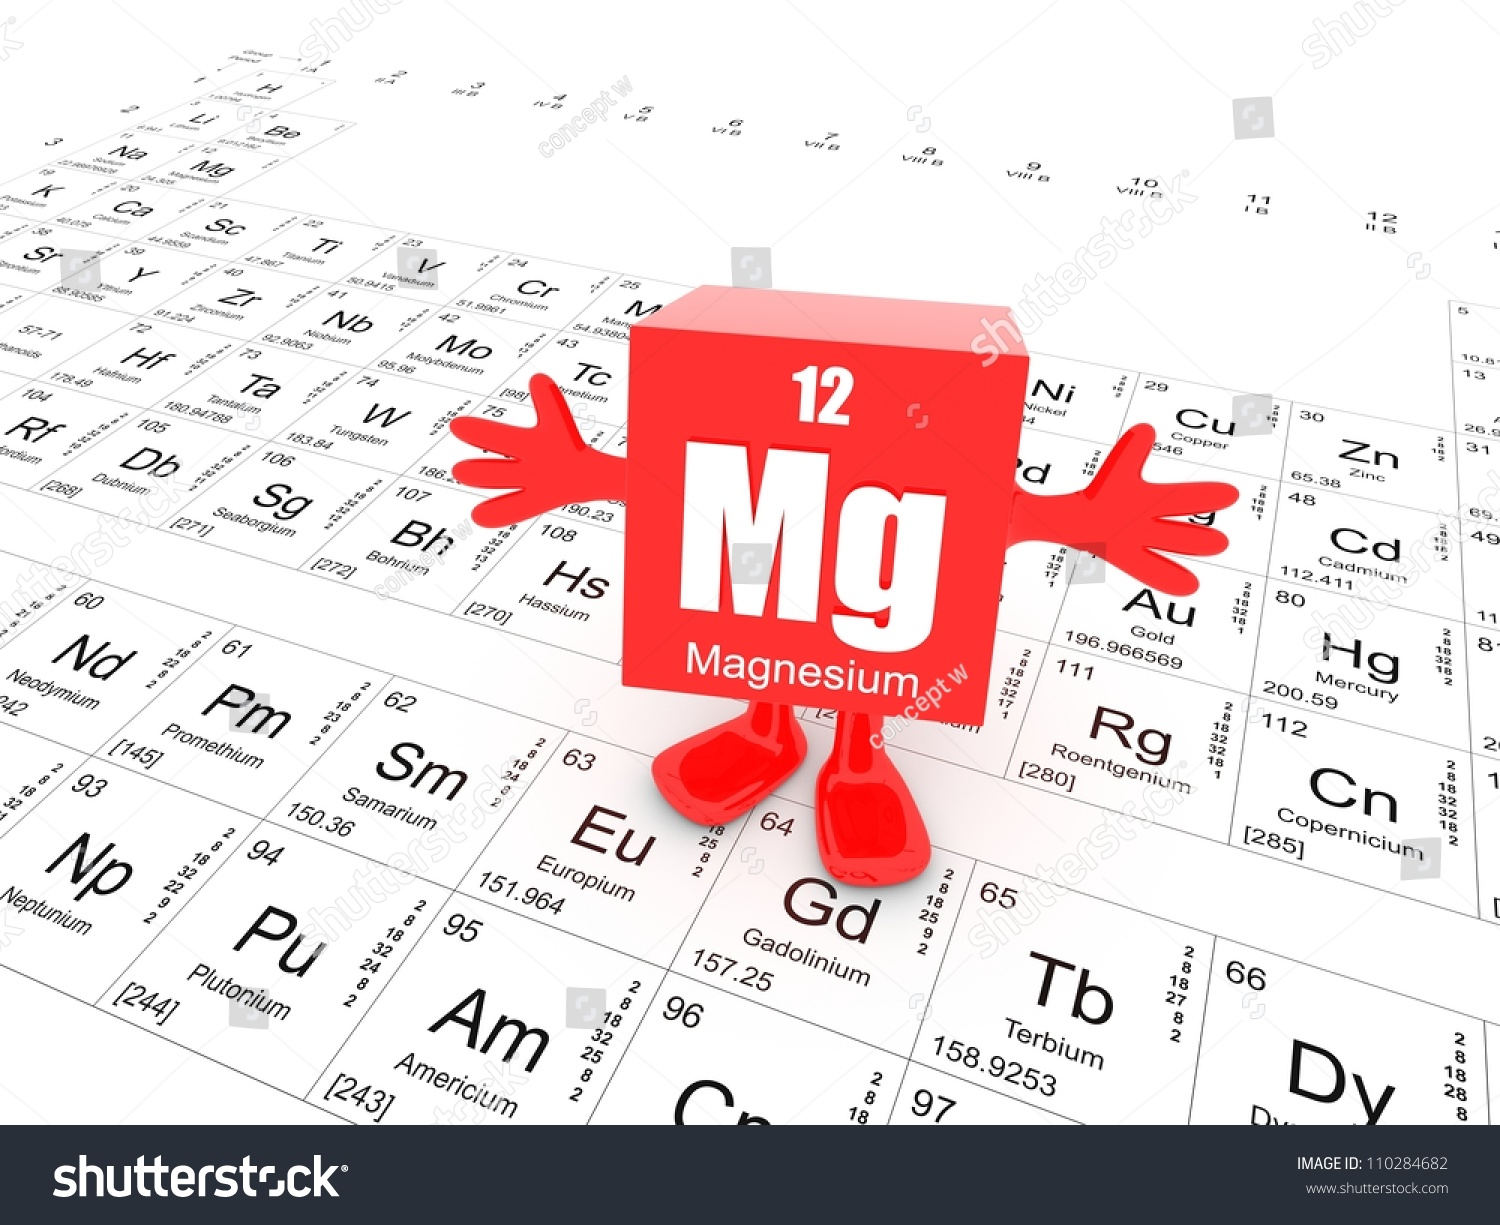 My name magnesium this periodic table stock illustration 110284682 my name is magnesium and this is the periodic table urtaz Choice Image